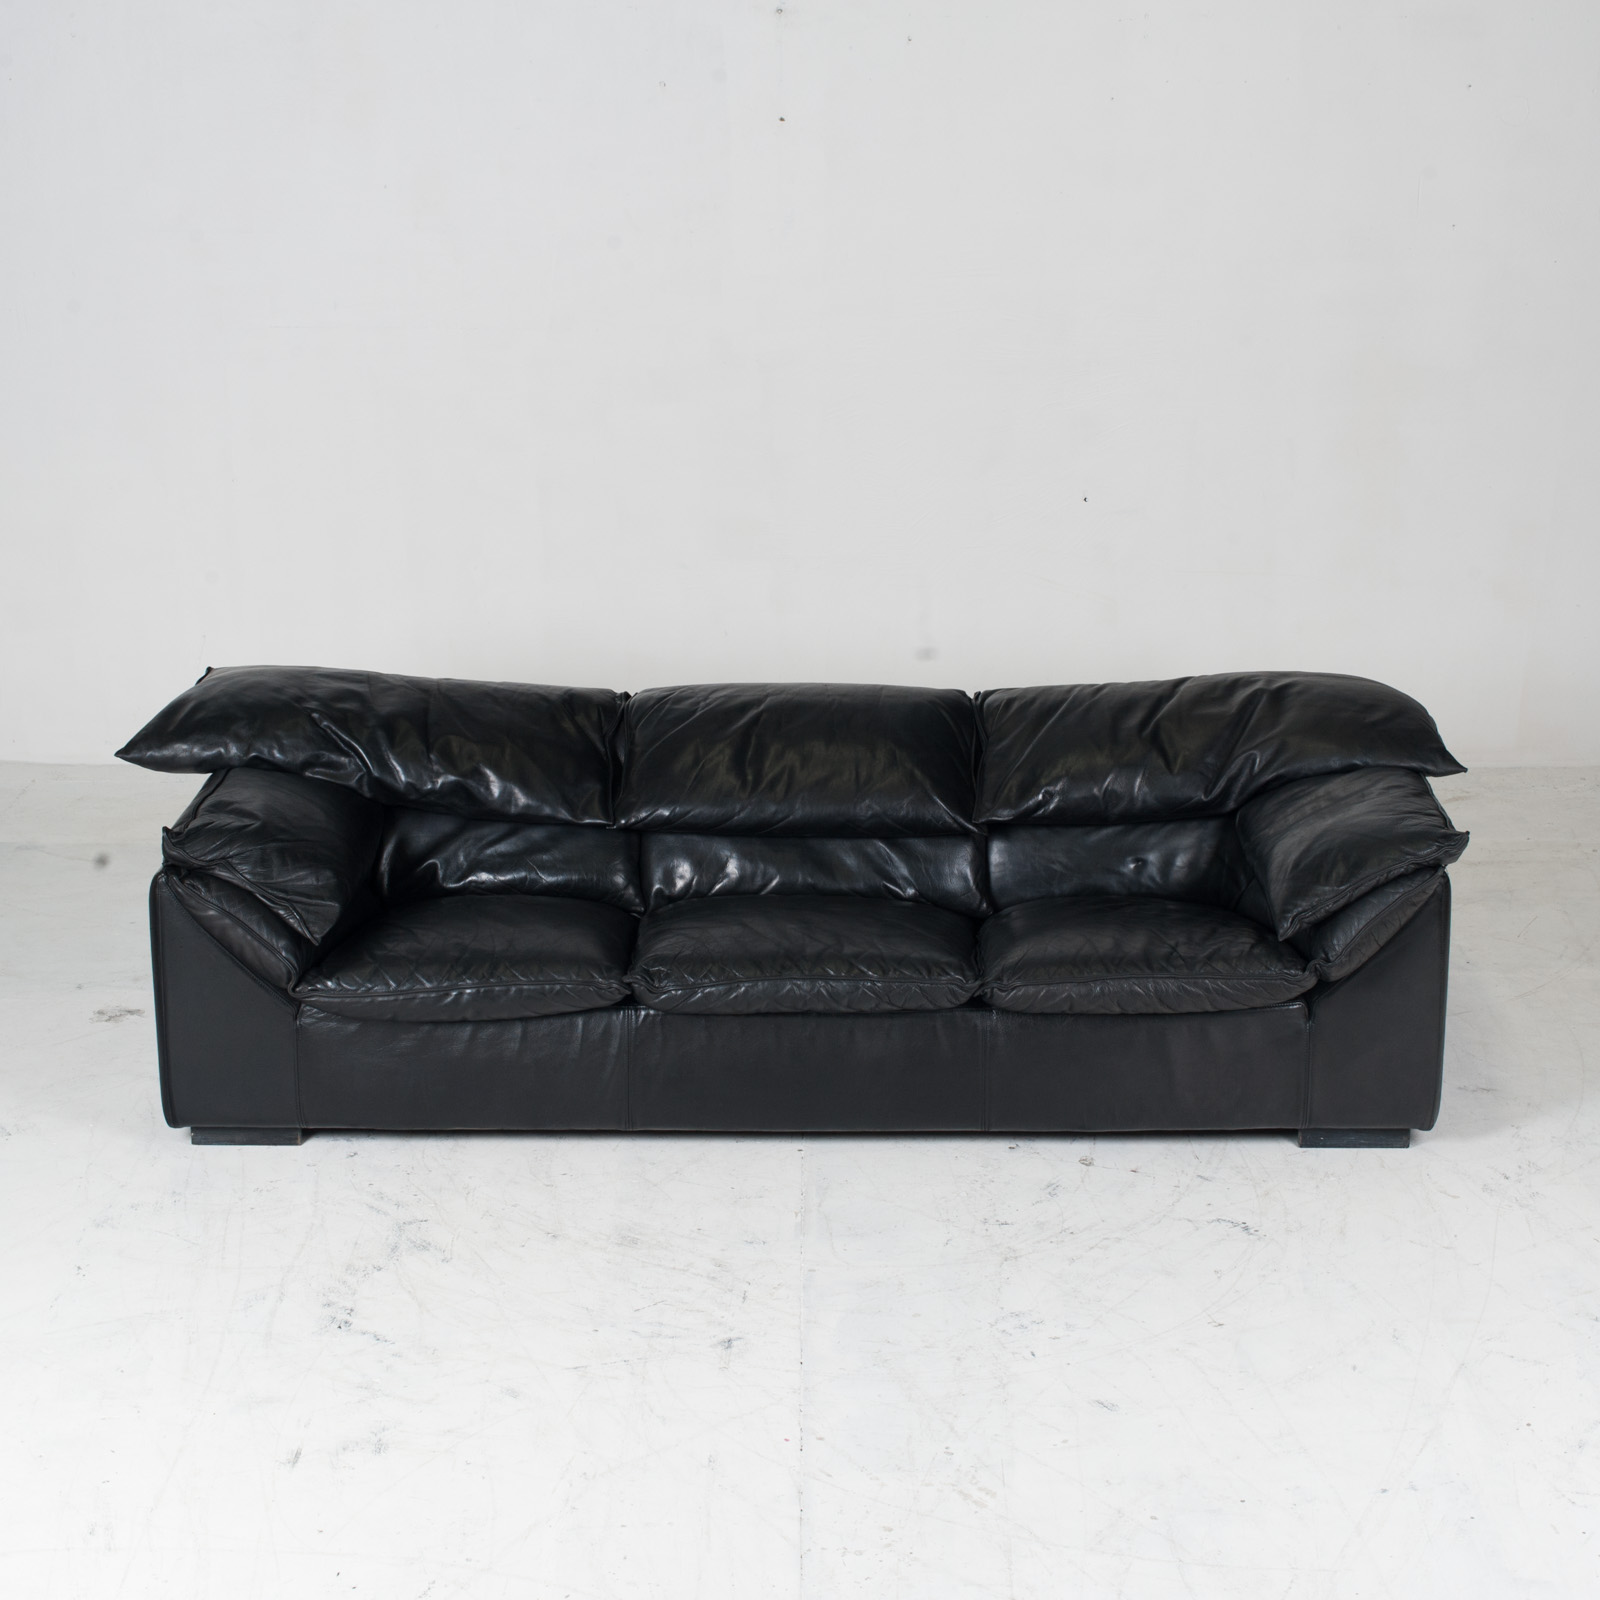 Model Monza 3 Seat Sofa By Eilerson In Black Leather 1970s Denmark 03